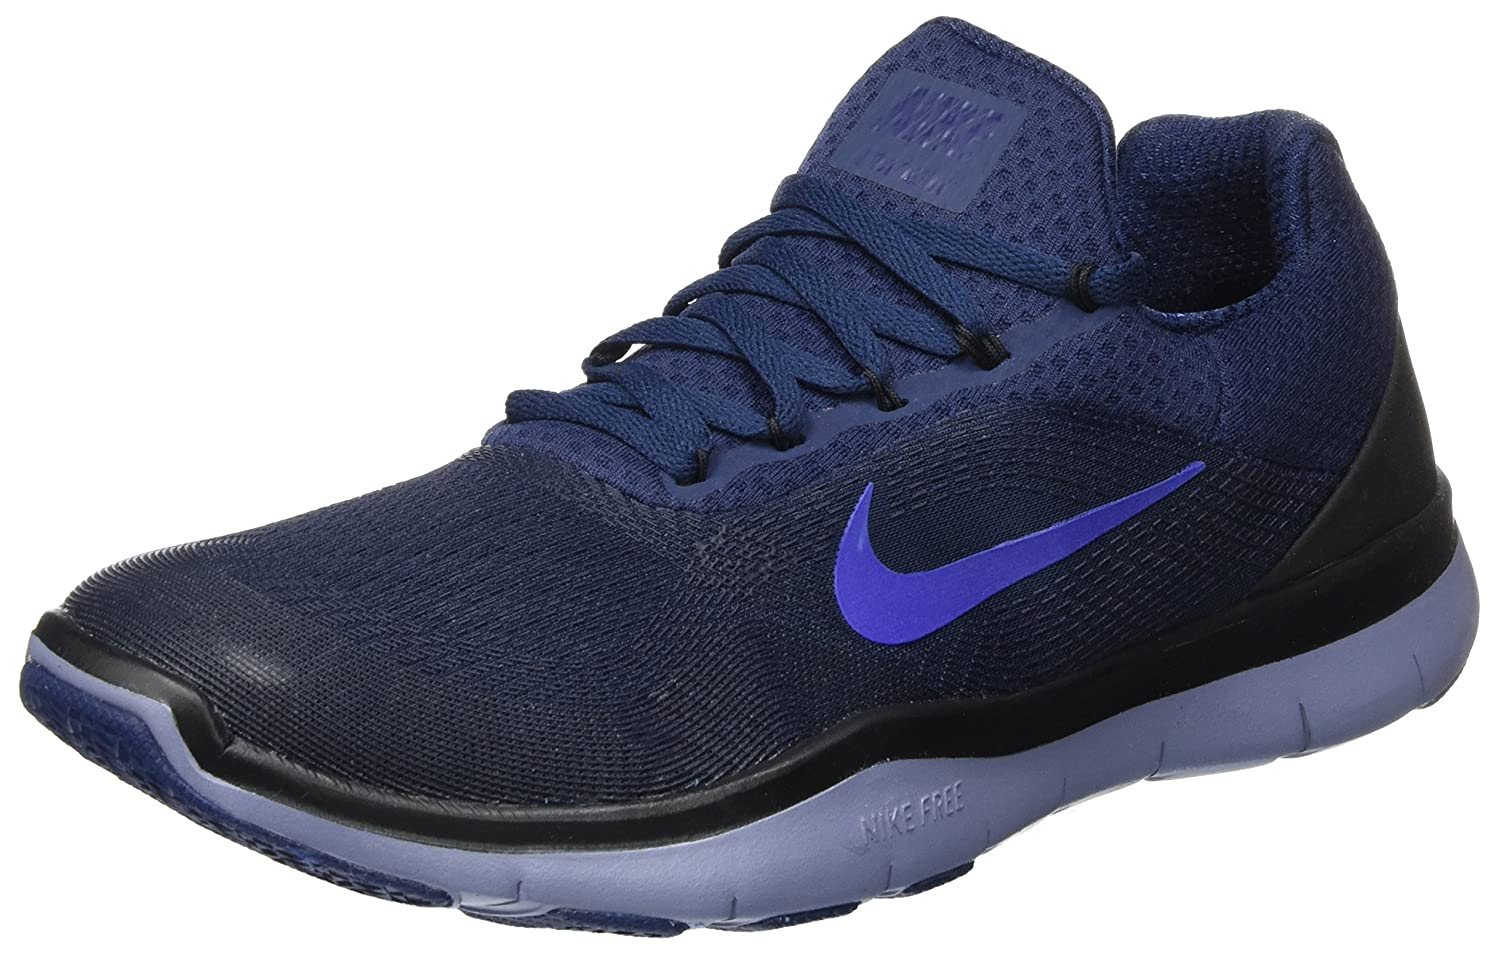 new product b625d 350e4 Amazon.com   Nike Men s Air Monarch Iv Cross Trainer   Fitness   Cross- Training